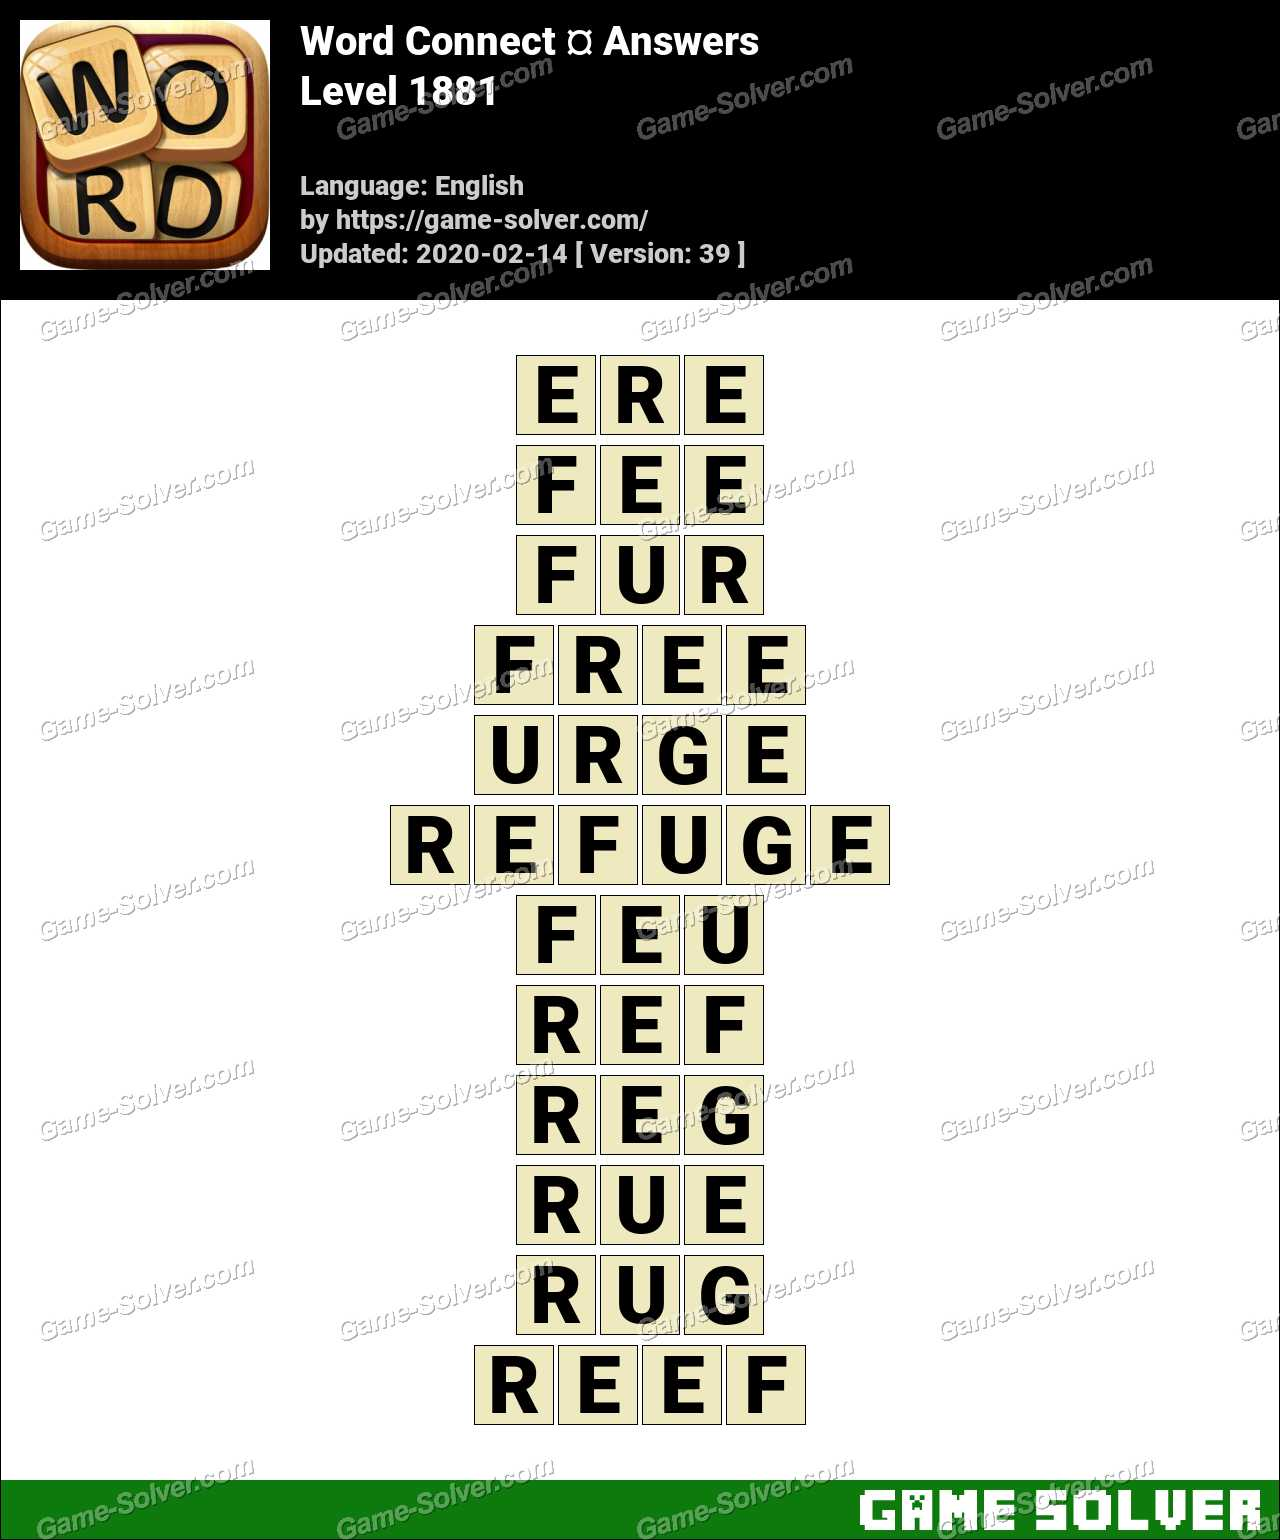 Word Connect Level 1881 Answers